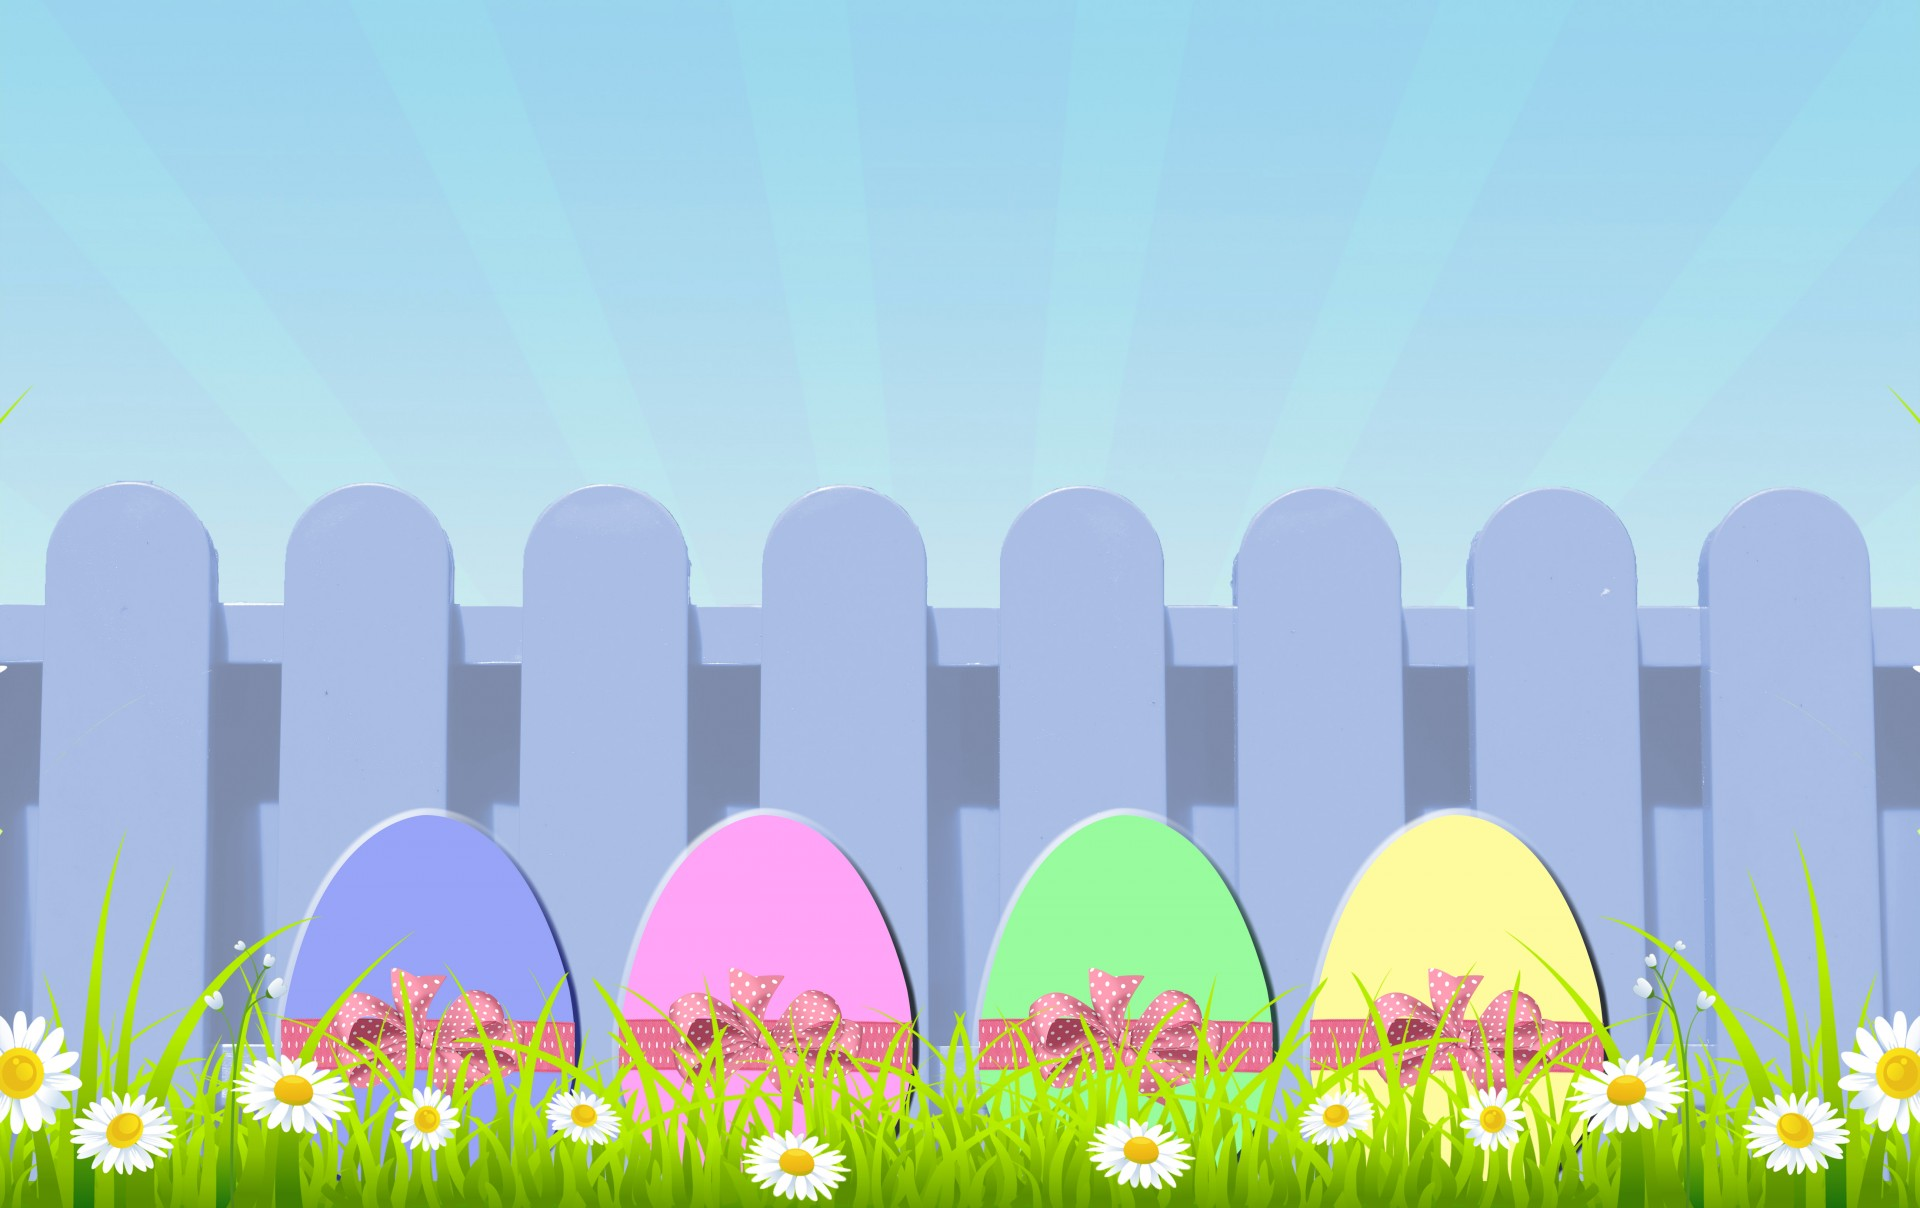 Cute Sky Blue Wallpaper Easter Eggs With Picket Fence Free Stock Photo Public